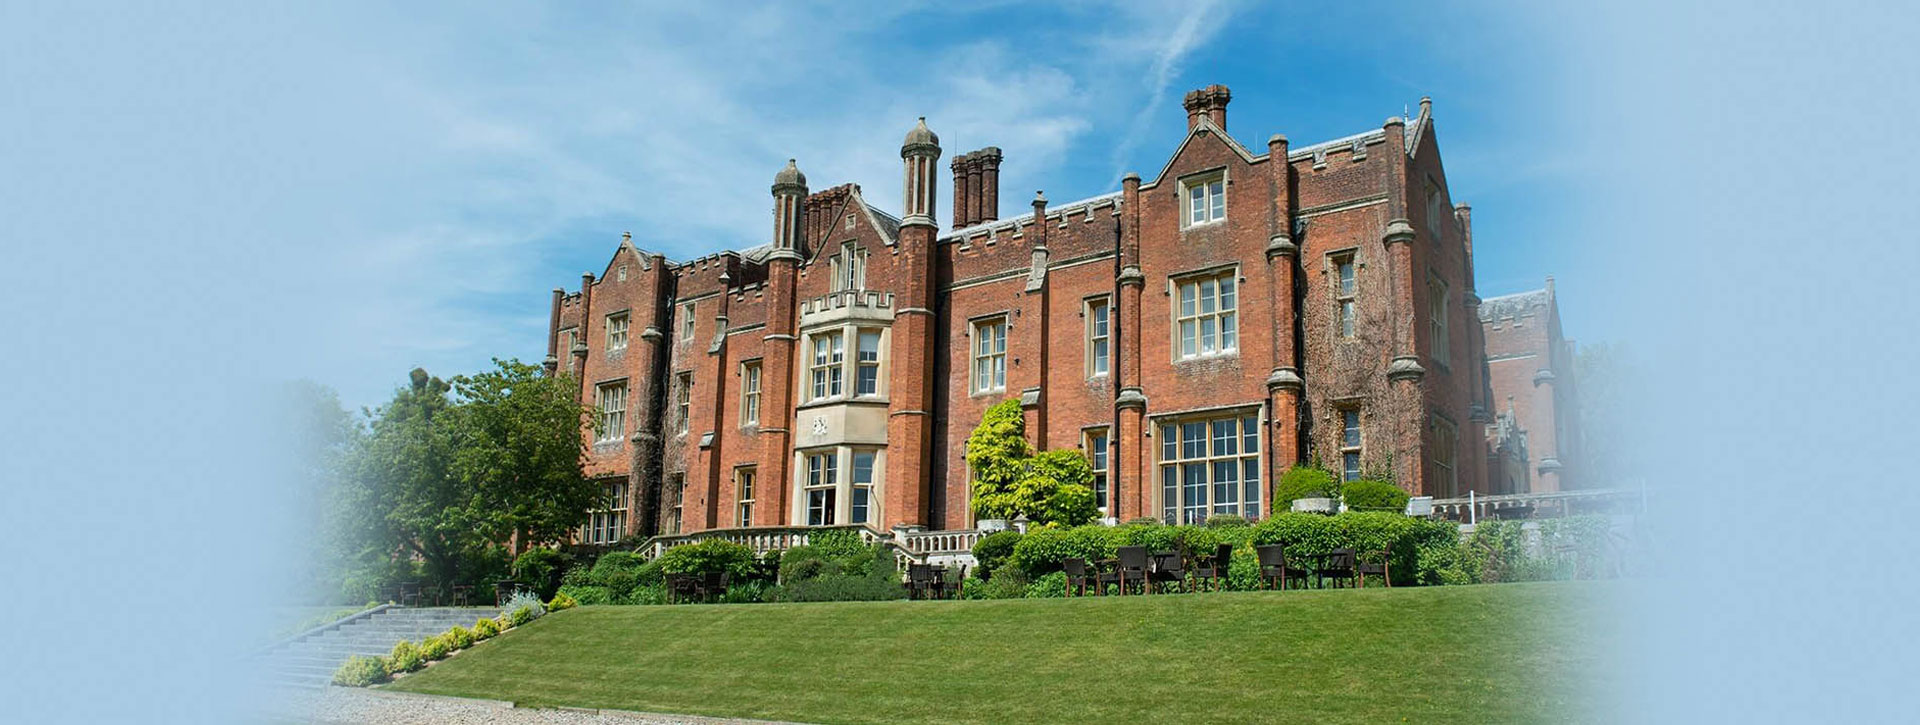 The fifth annual UK-India conclave residential retreat at a breath-taking venue in Buckinghamshire – the De Vere Latimer Estate